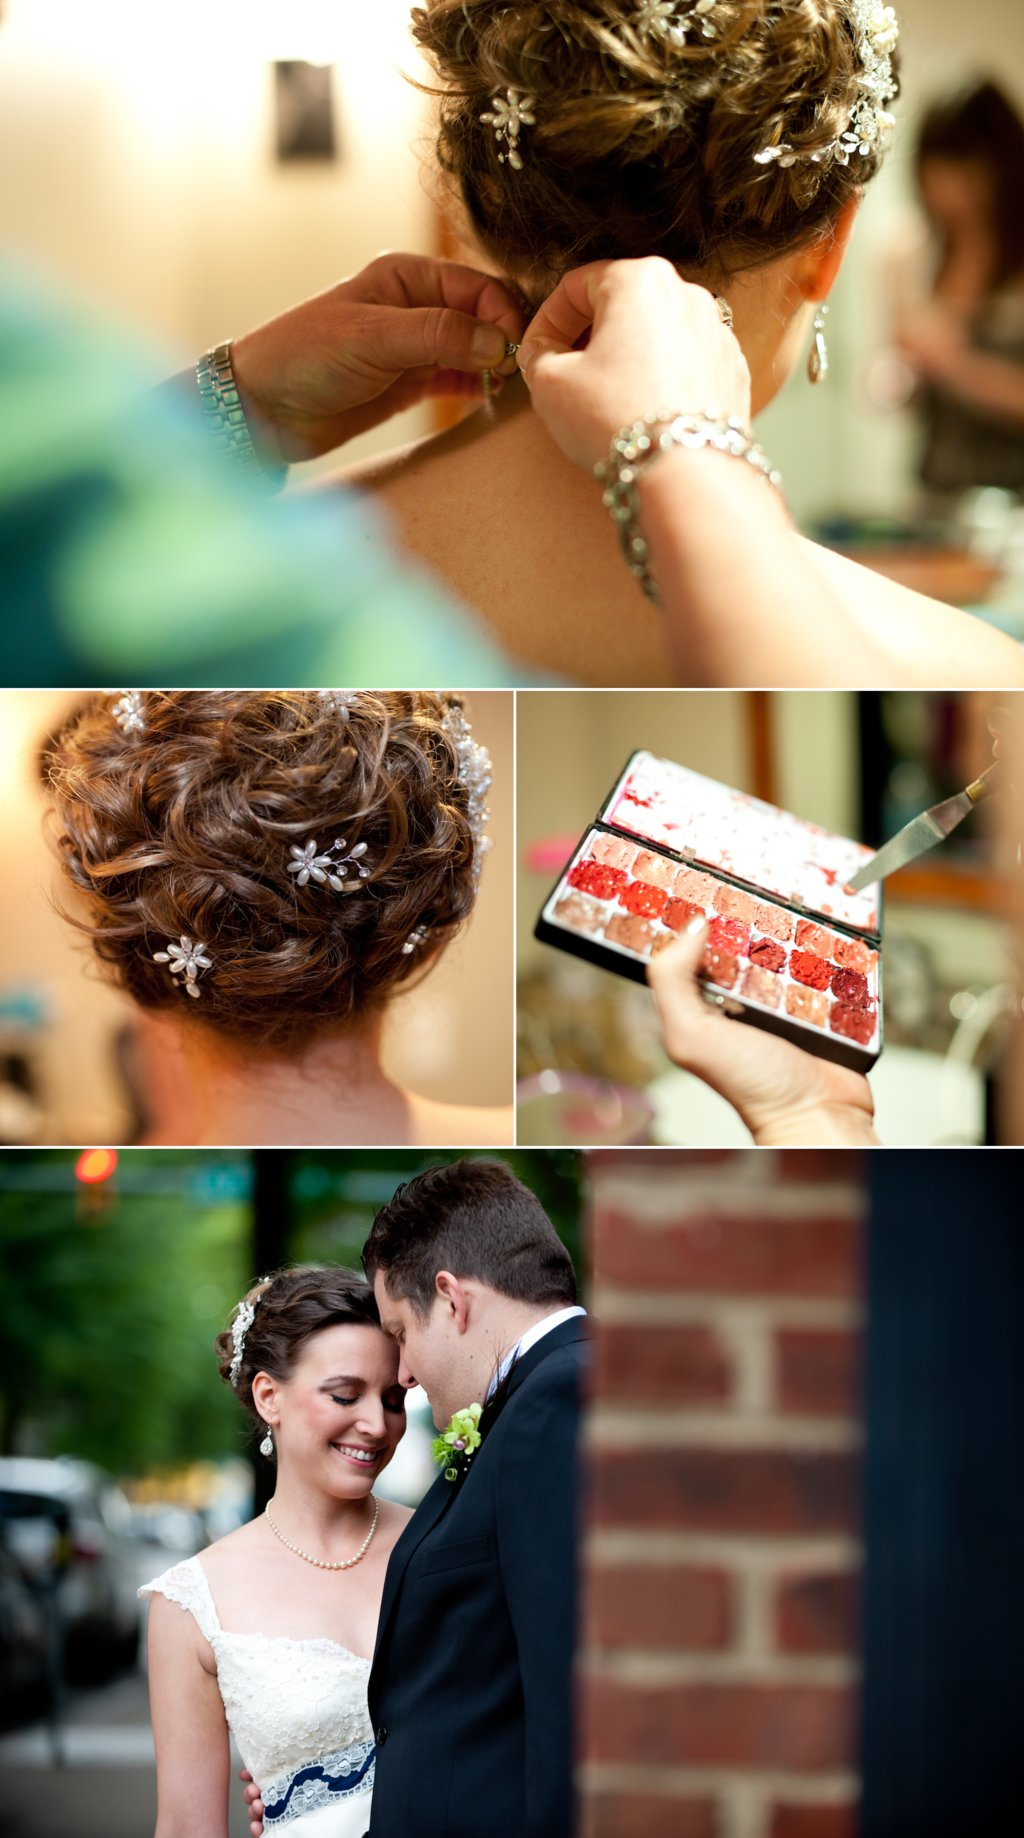 Scrabble-themed-wedding-virginia-bridal-updo.full